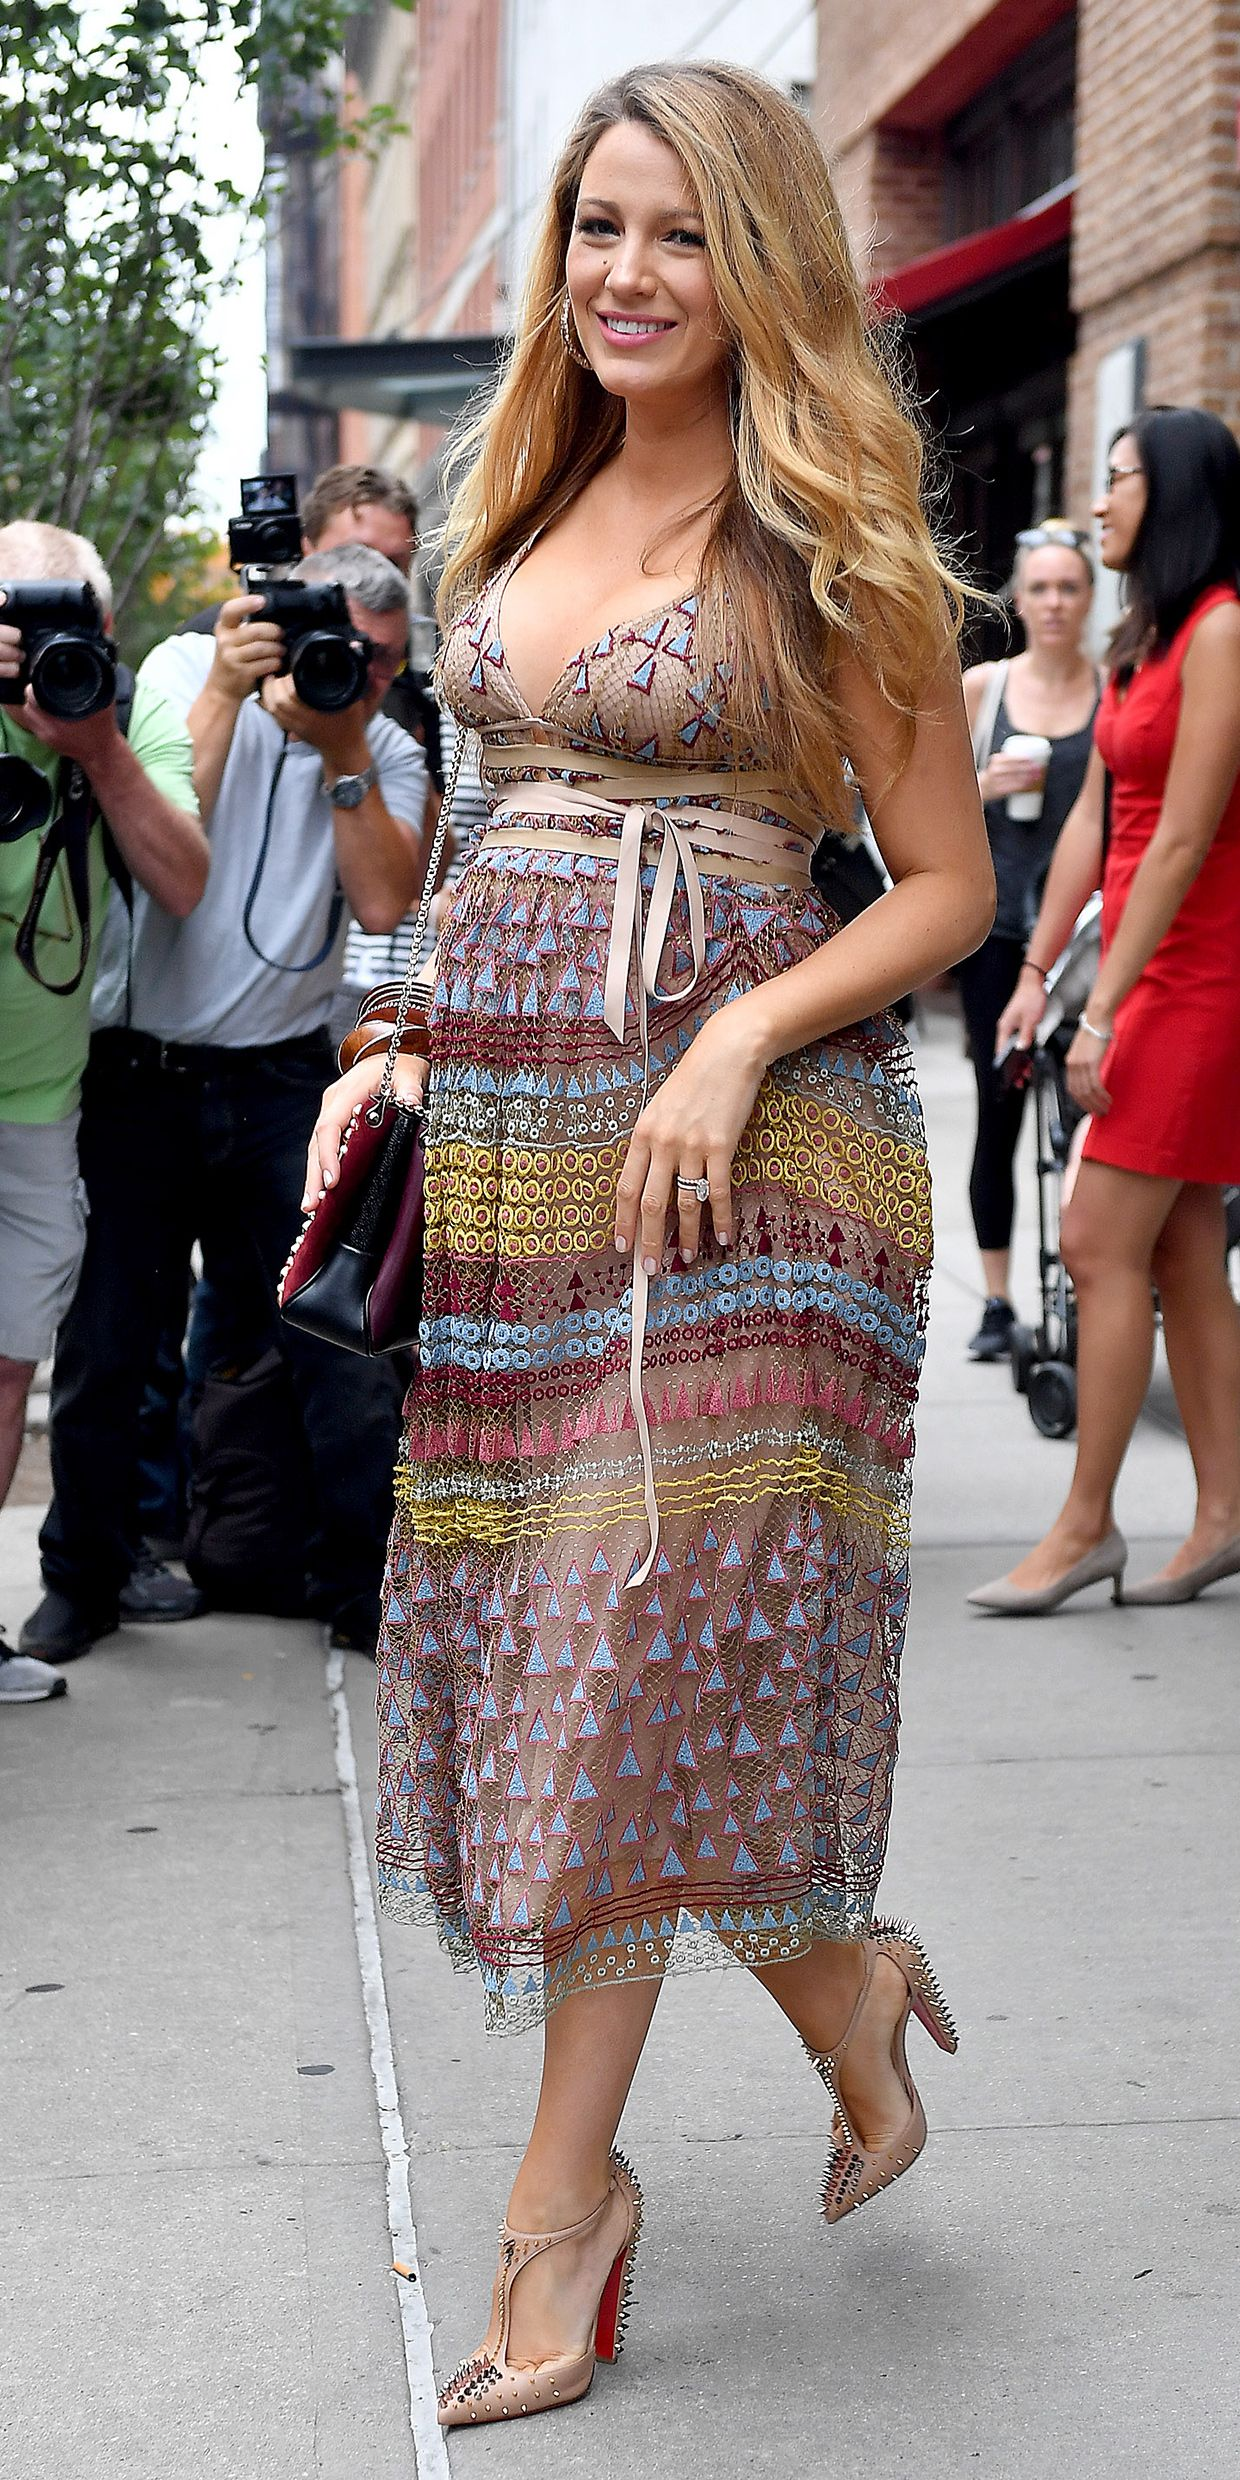 fe59c6b310 Blake Lively s Chic Maternity Style - July 13